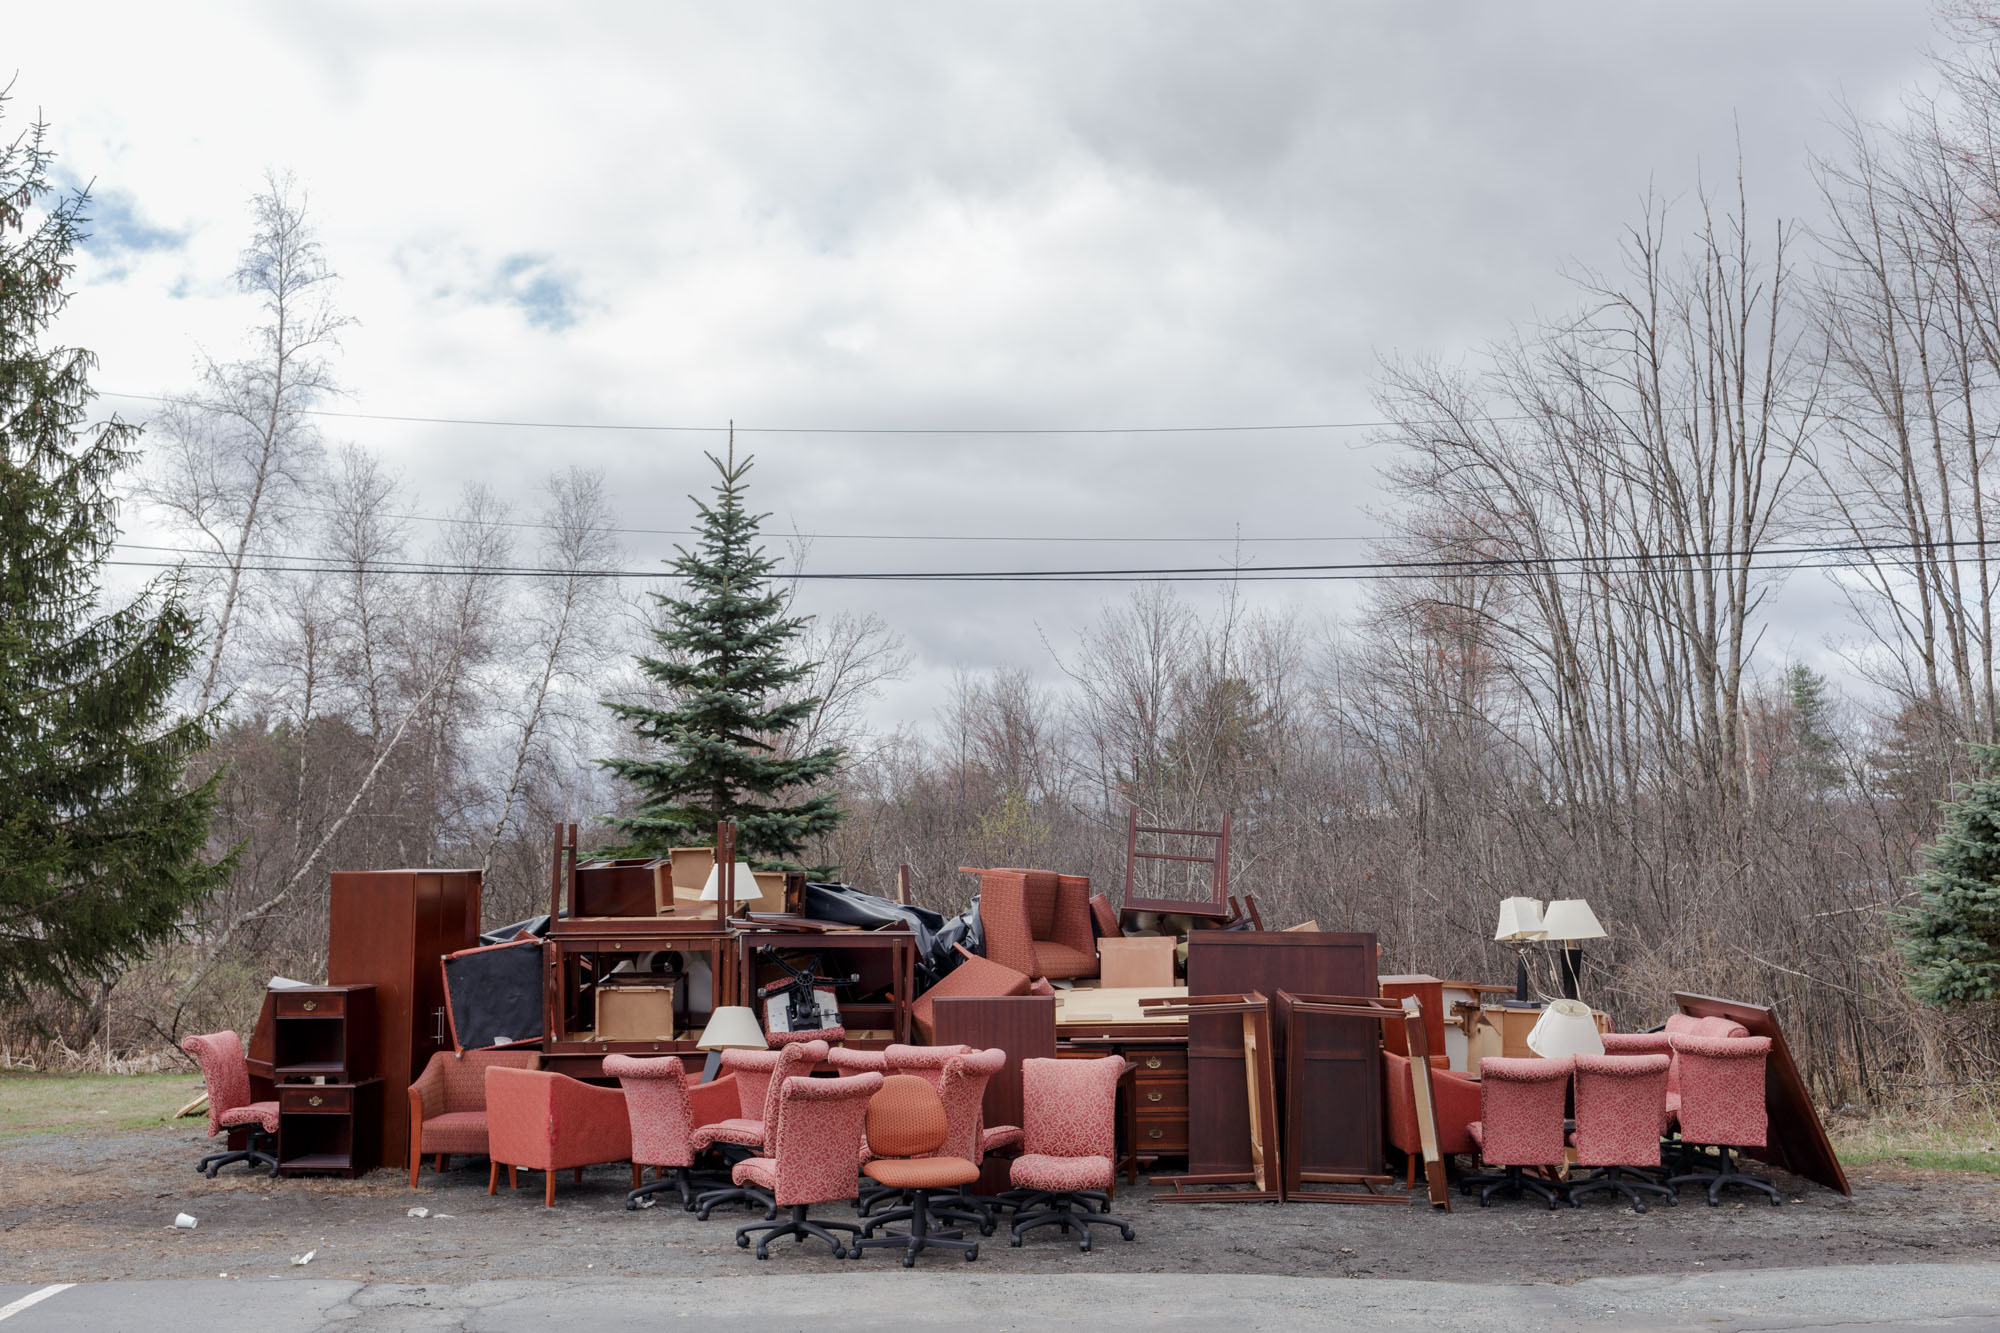 Discarded Hotel Furniture